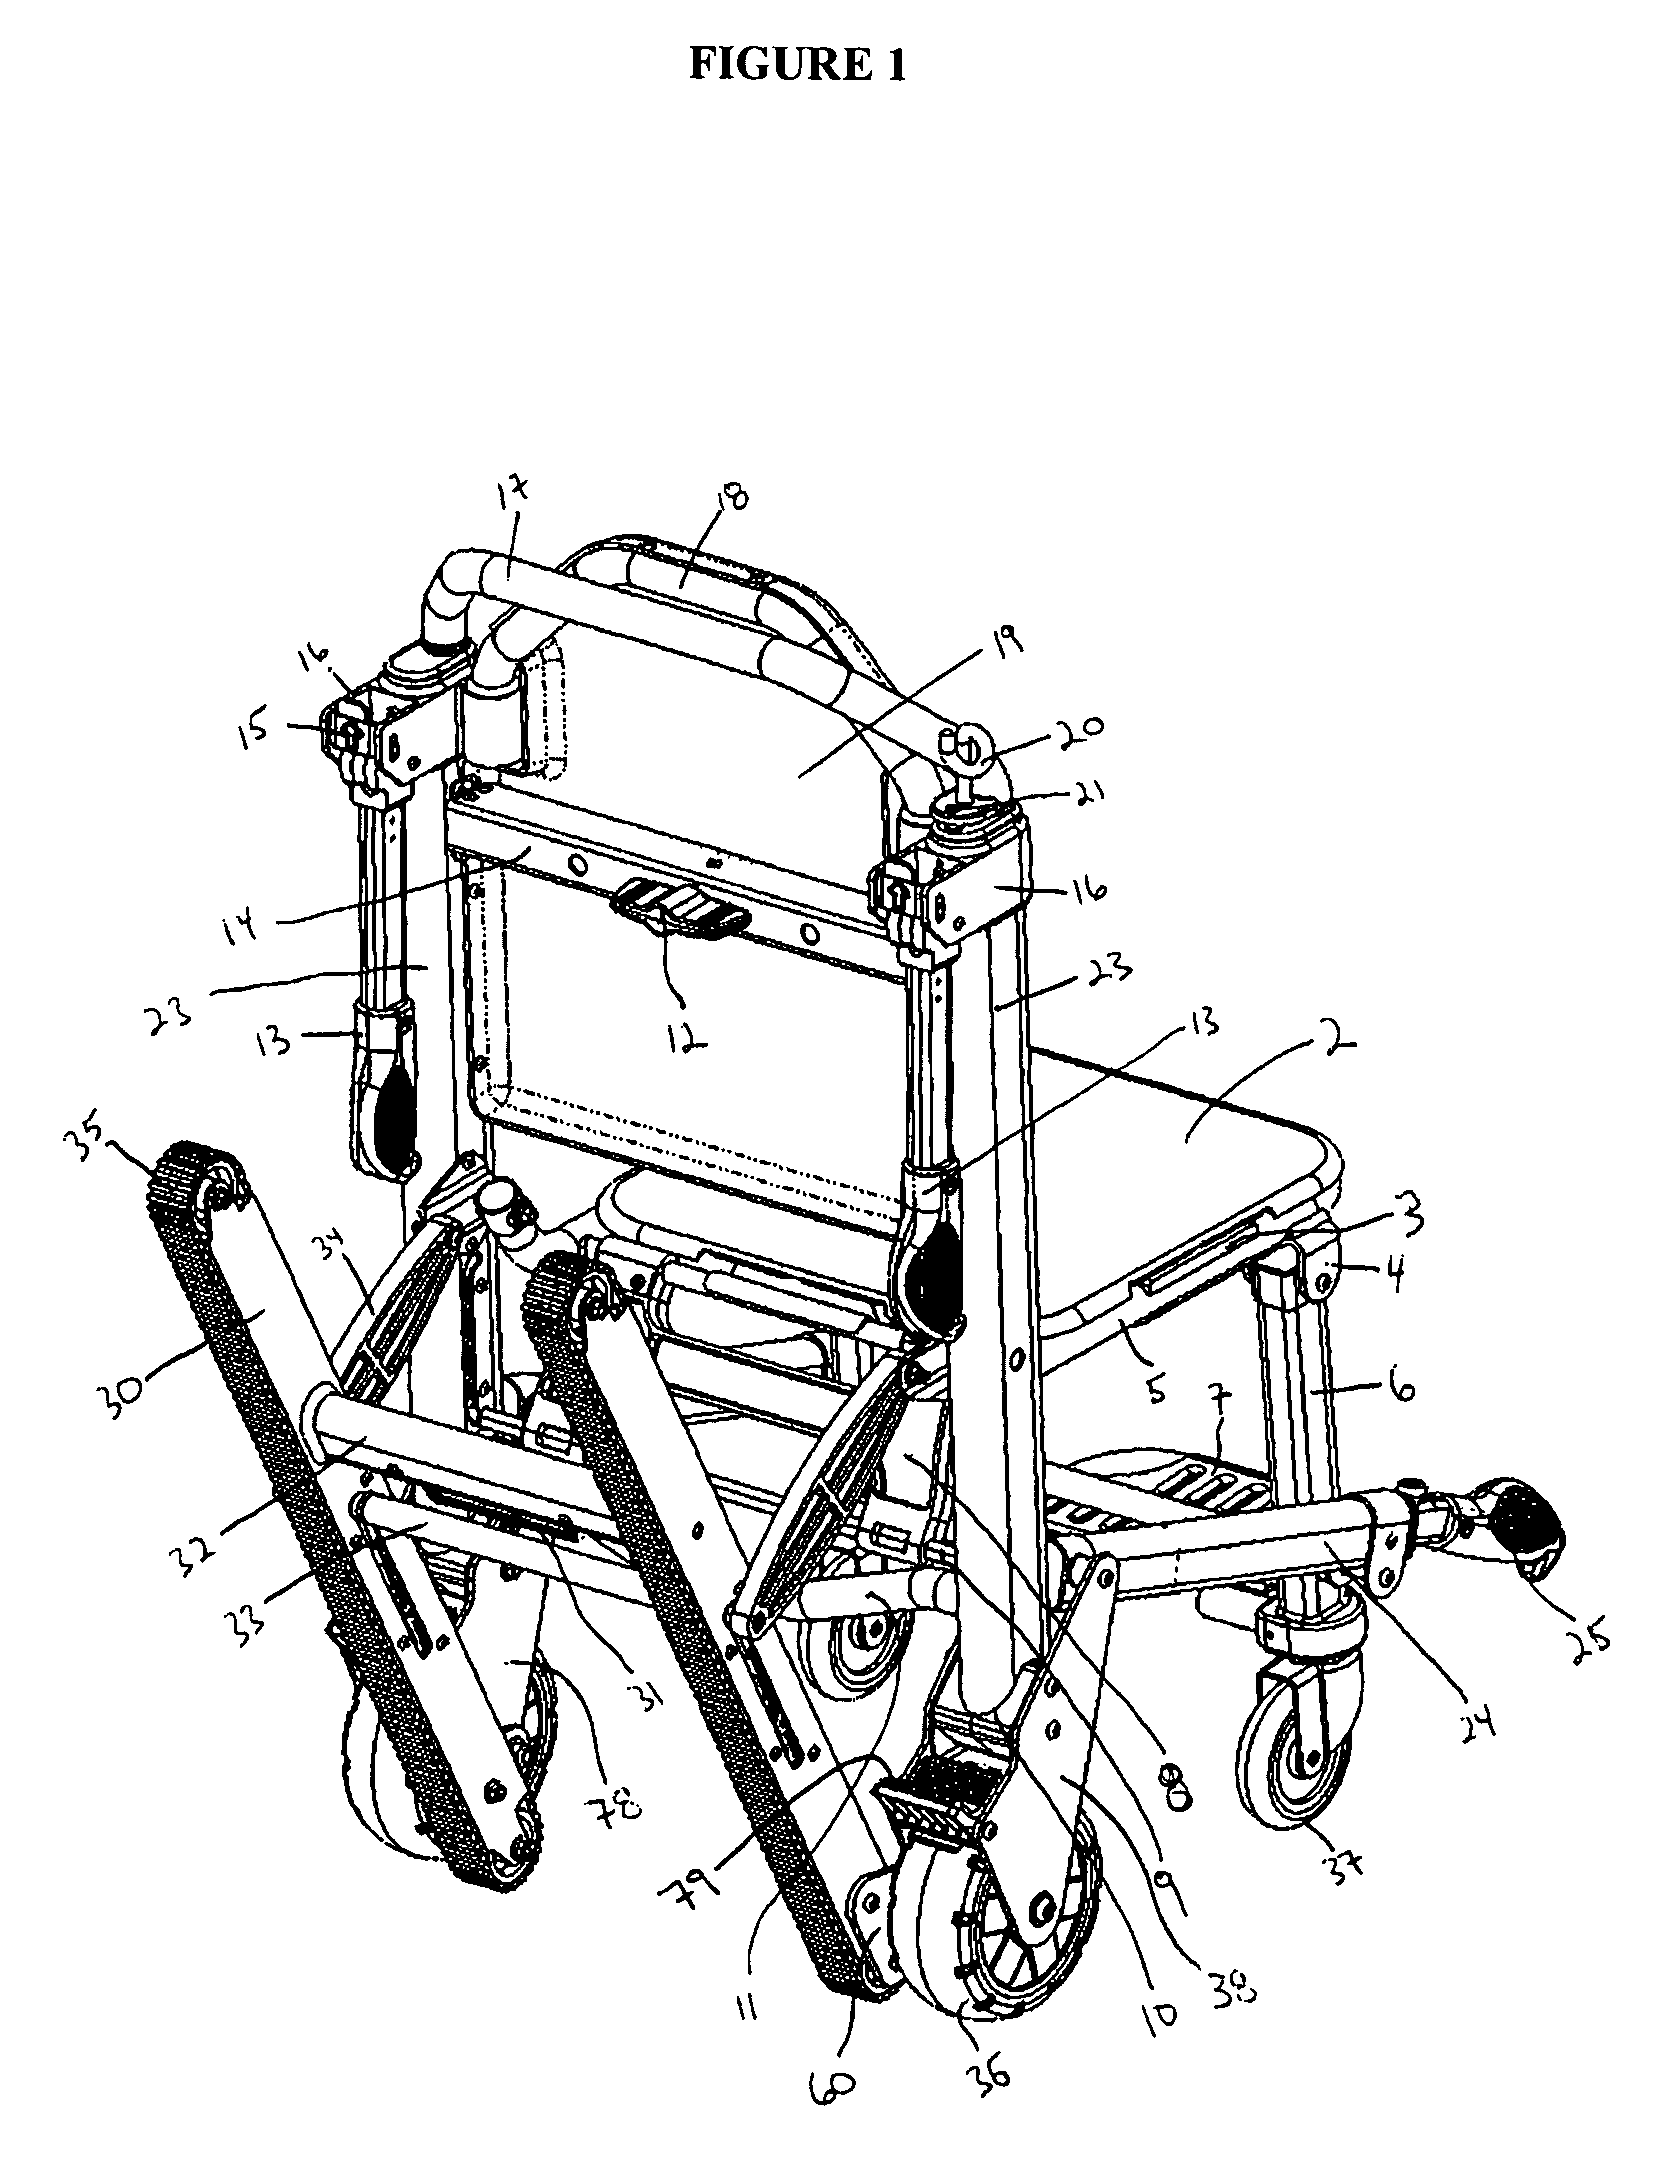 patent us7950673 - stair chair